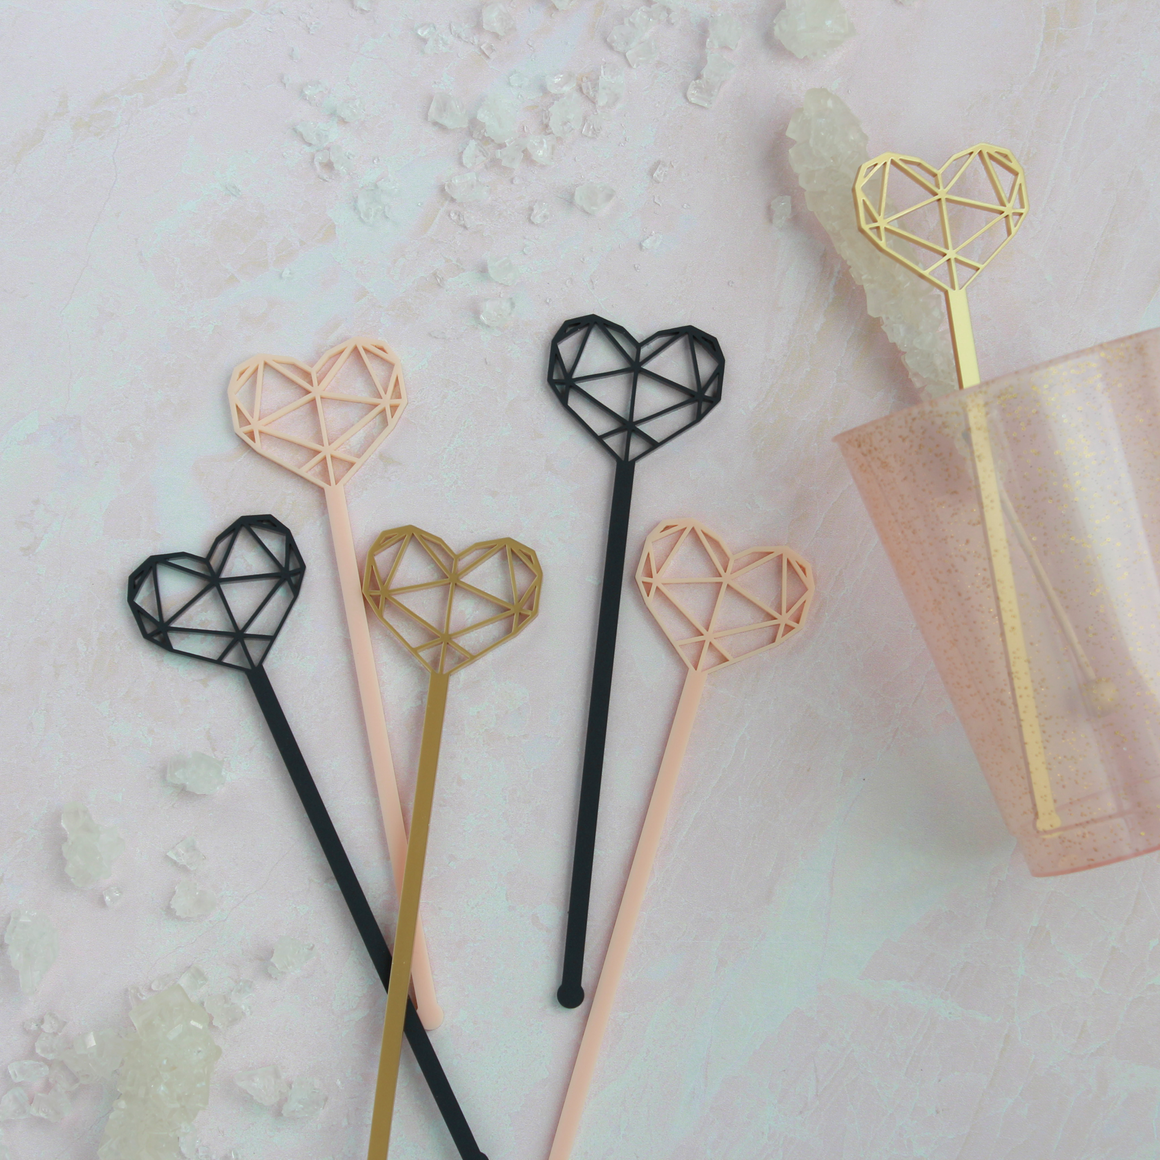 GEM HEART STIRRER SET